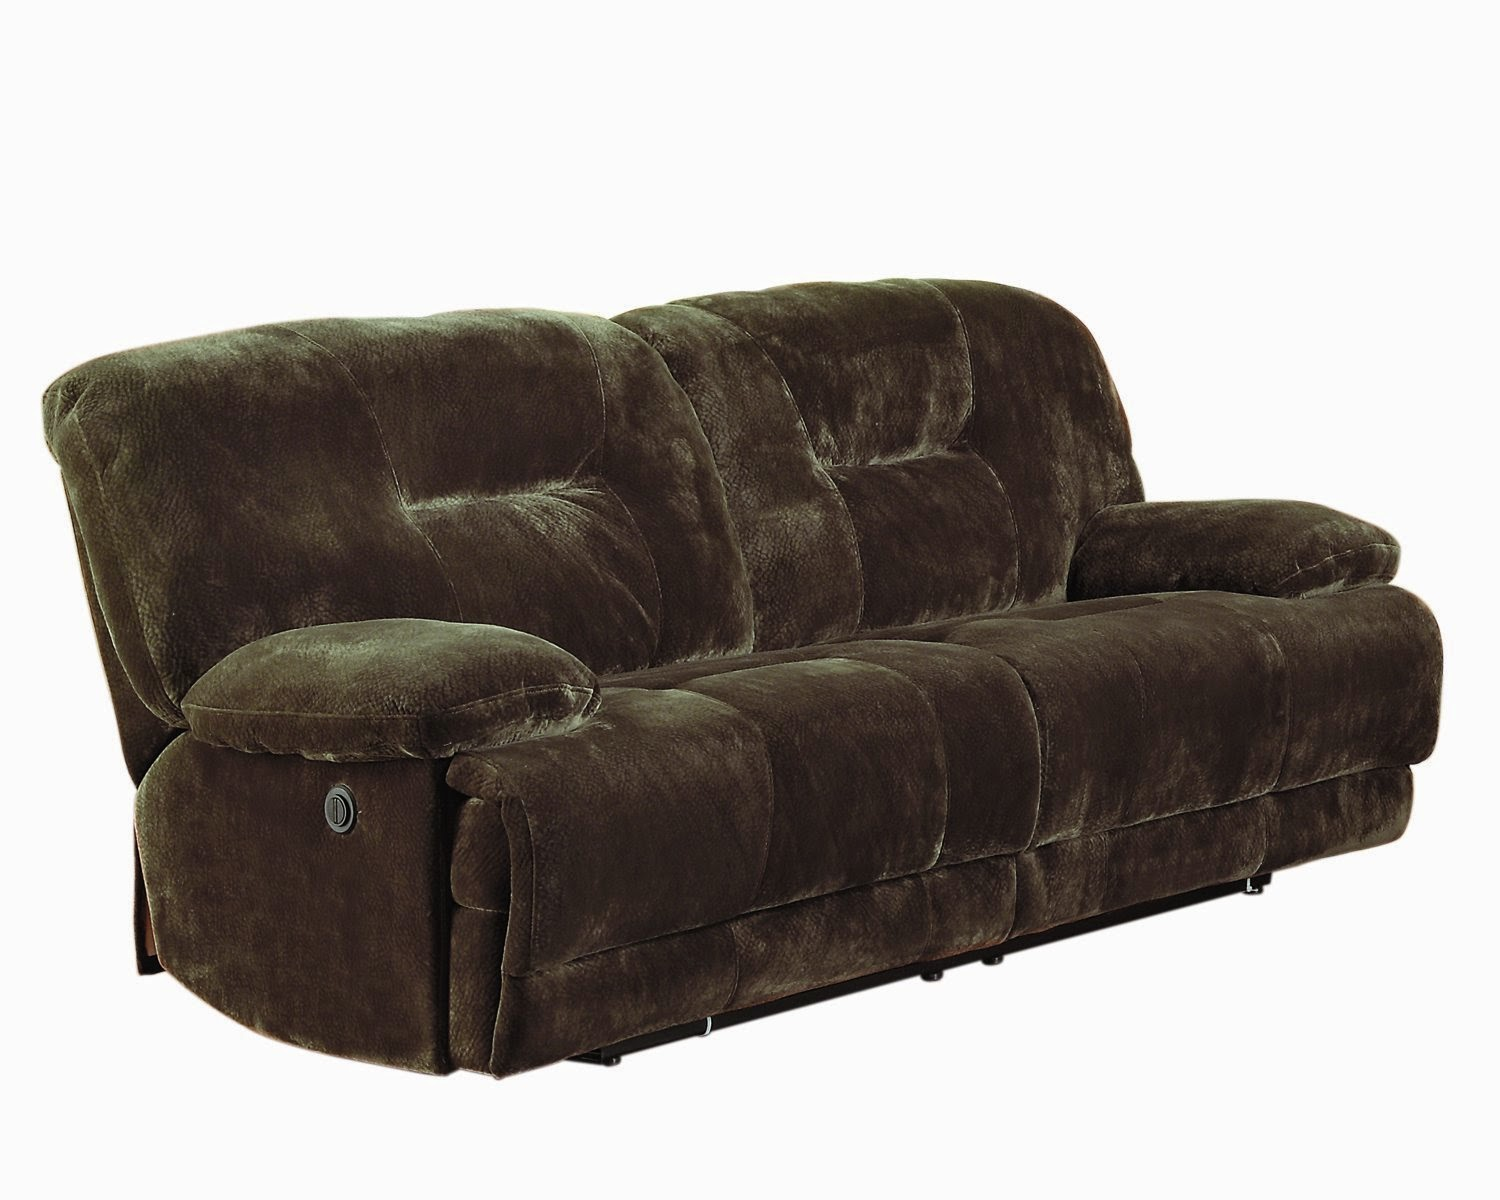 Cheap reclining sofas sale 2 seater leather recliner sofa for Sectional sofas with 4 recliners